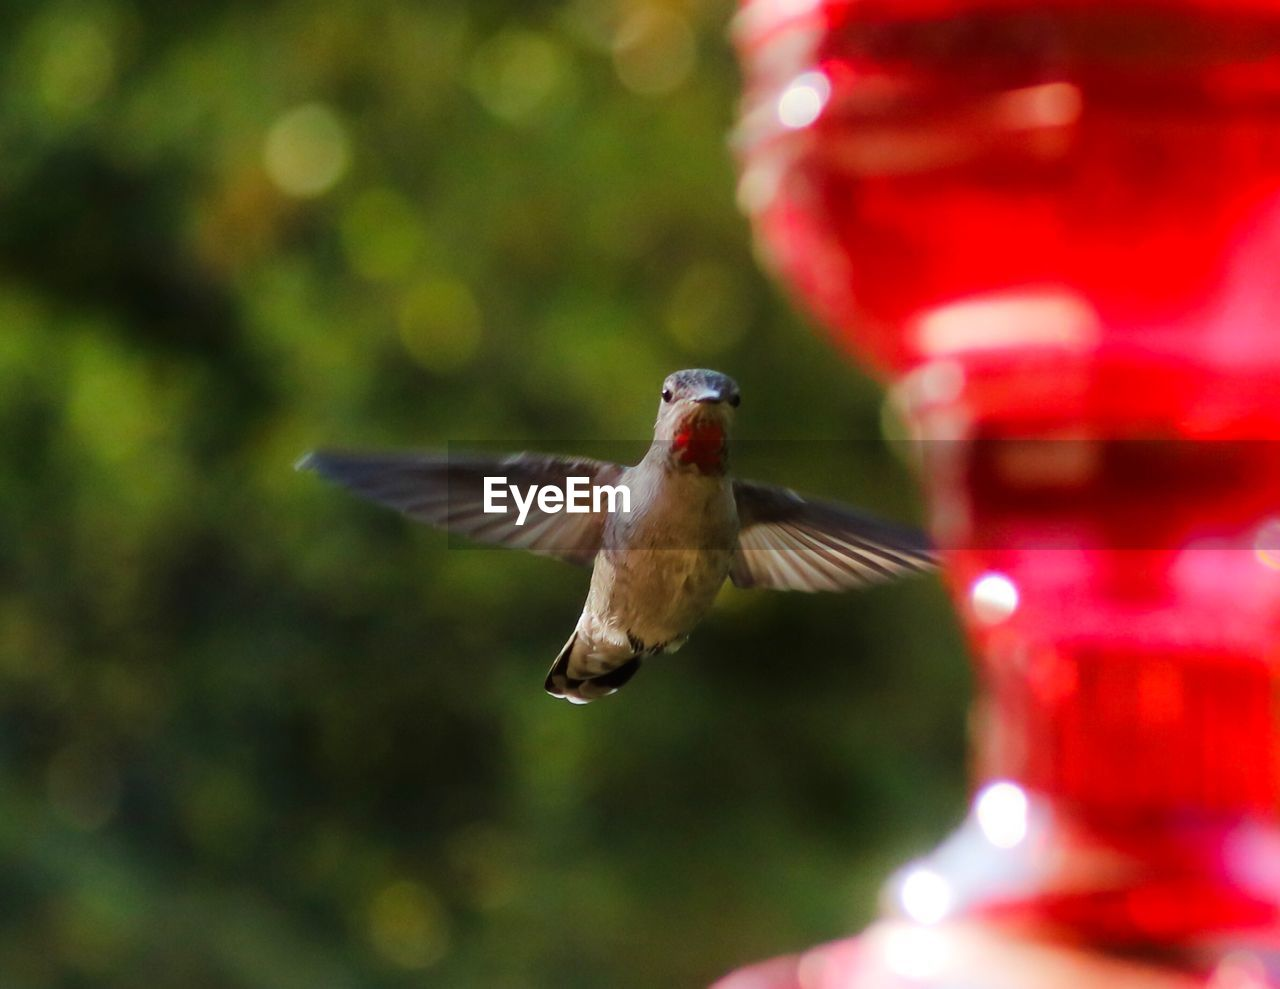 bird, animal themes, vertebrate, animal wildlife, animals in the wild, flying, animal, spread wings, one animal, hummingbird, motion, red, mid-air, blurred motion, focus on foreground, no people, day, bird feeder, full length, outdoors, flapping